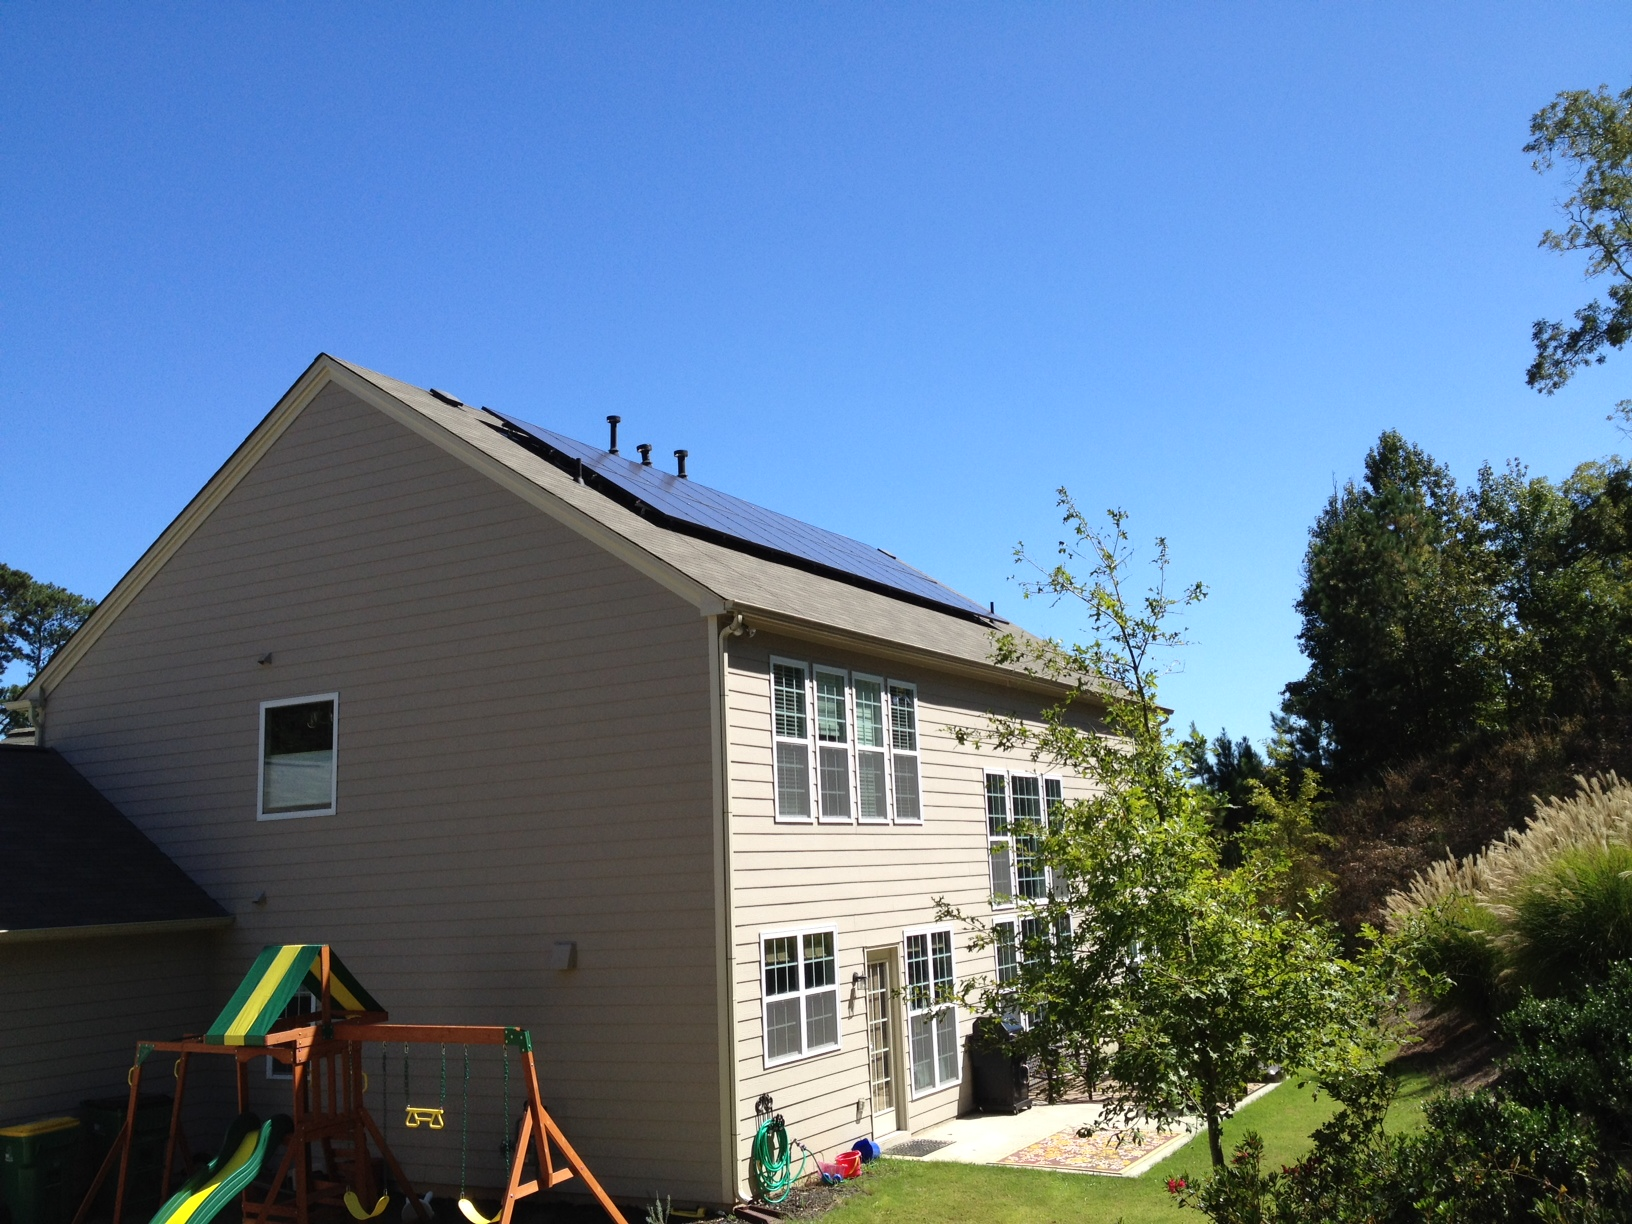 solar-lease-georgia-home-solar-panels-side-view